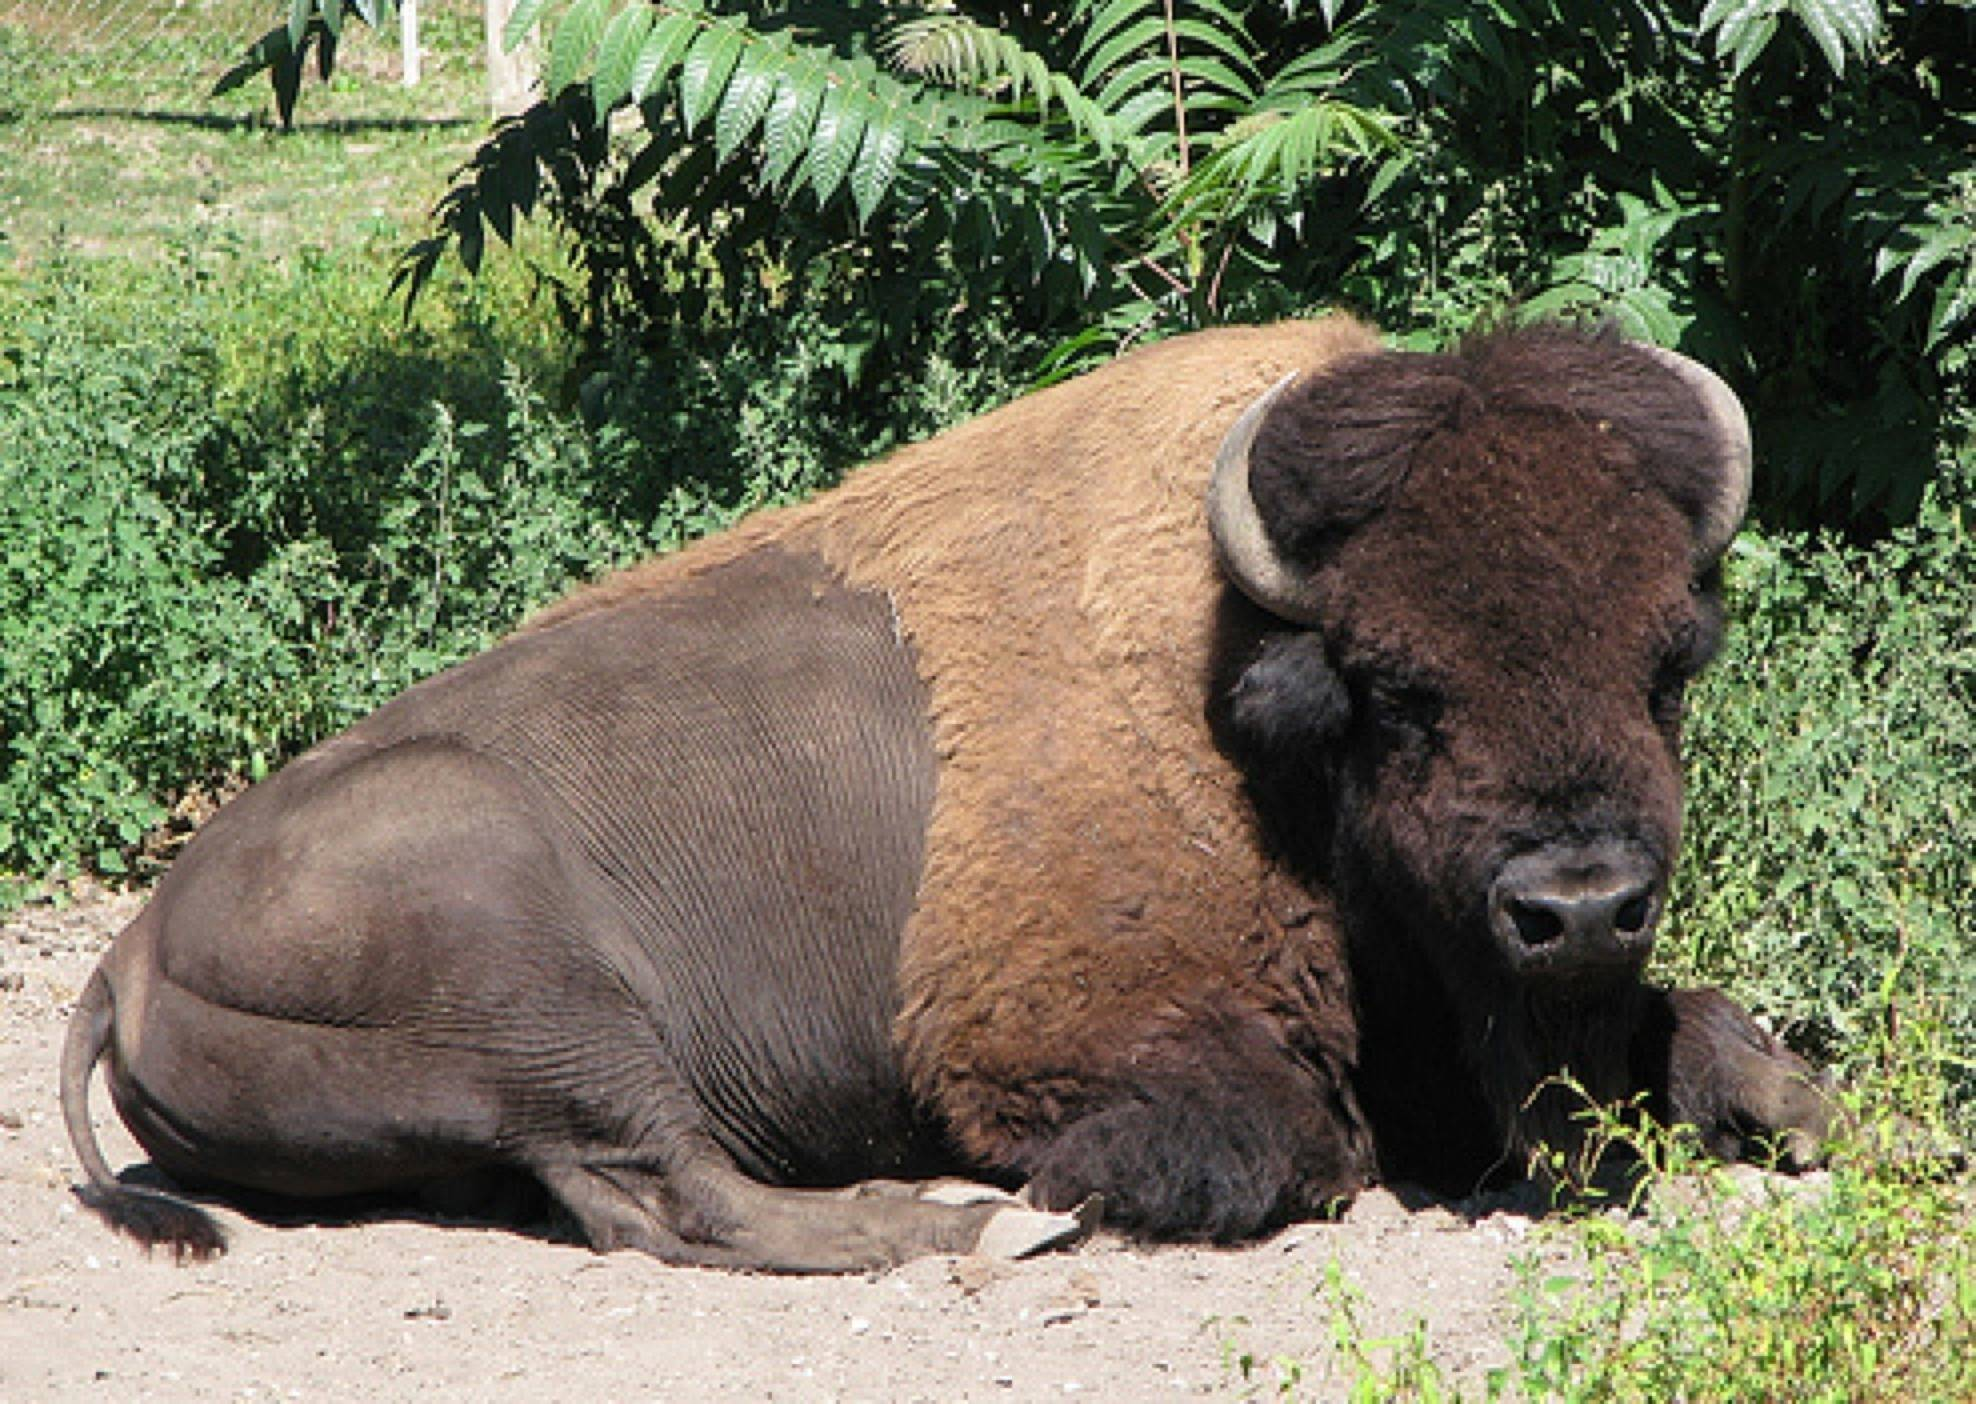 Dakota relaxes inside the bison pen at Lords Park Zoo in Elgin last summer. He died over the Christmas holiday weekend of complications stemming from pneumonia.